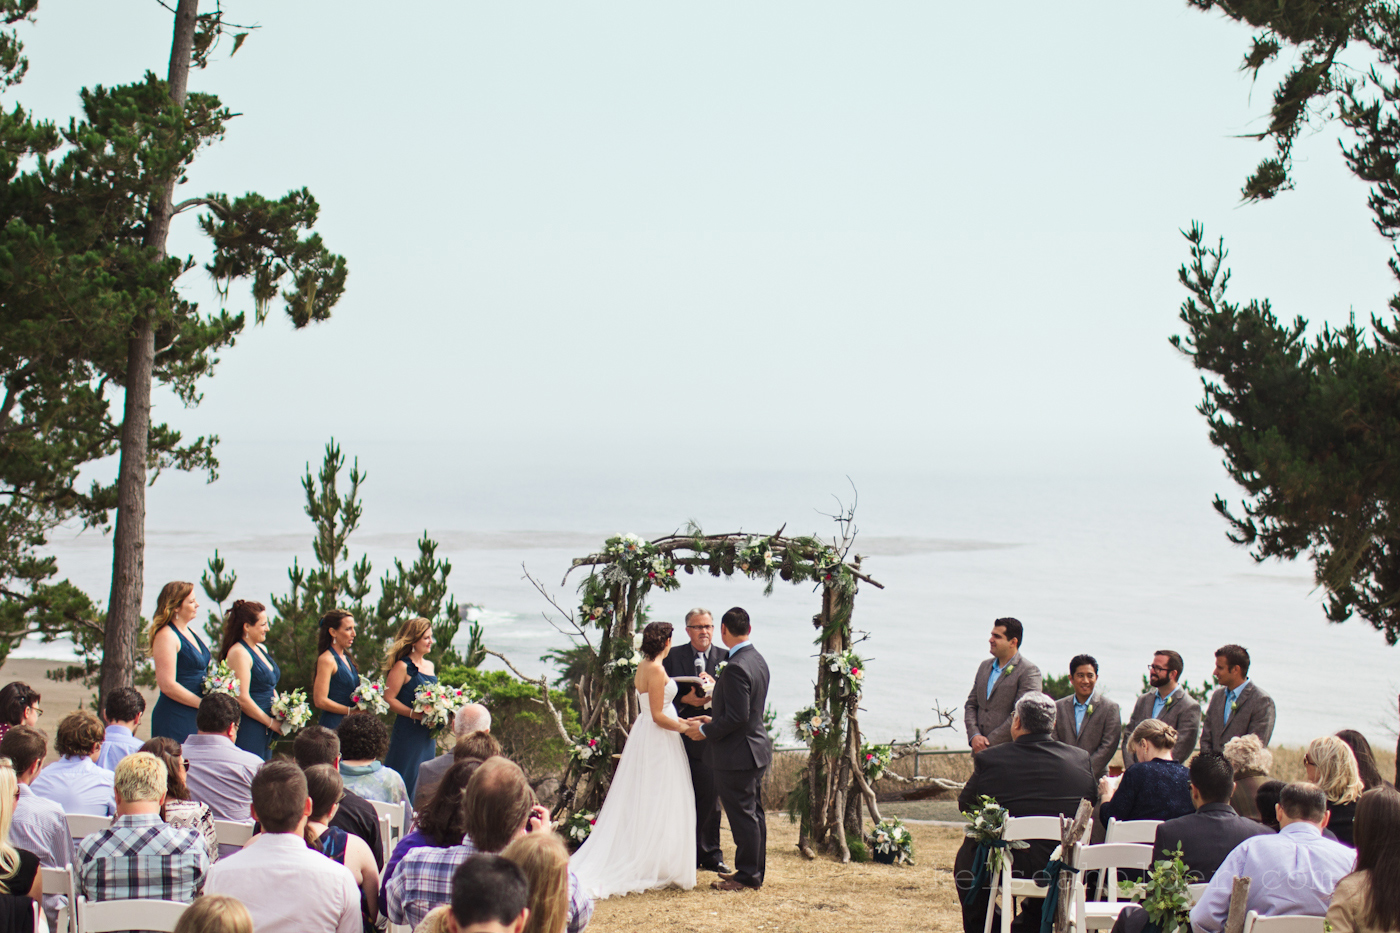 kelsea_holder_eco_outdoor_california_wedding030